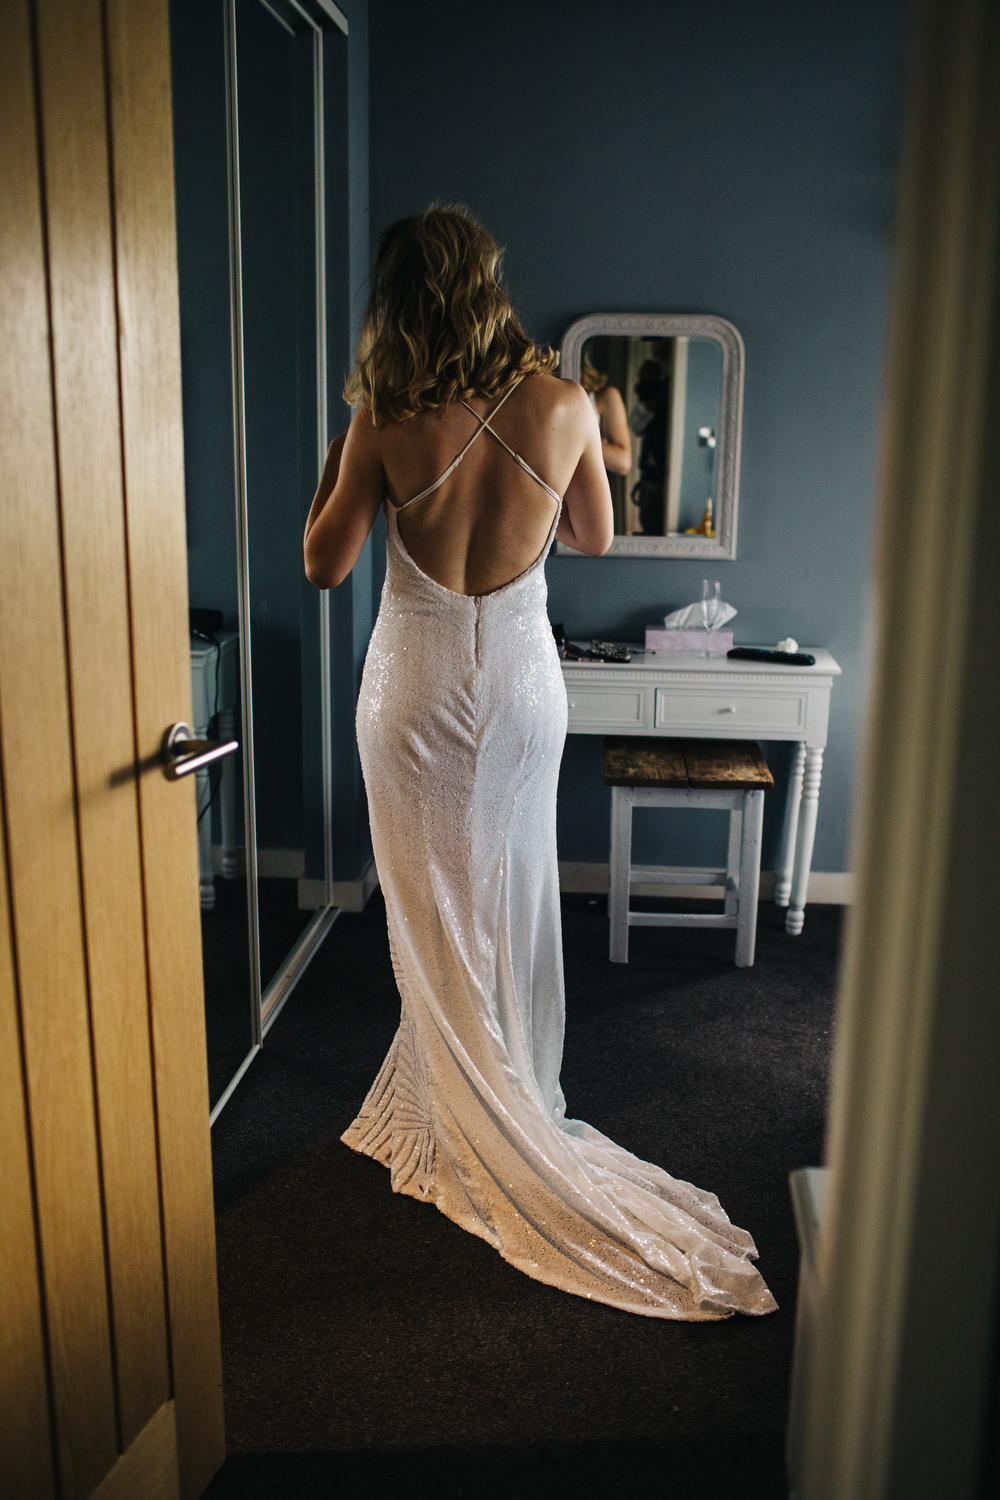 Sequin Dress Bride Bridal Gown Spaghetti Straps Spilt Skirt Train Deer Park Country House Hotel Wedding Richard Skins Photography